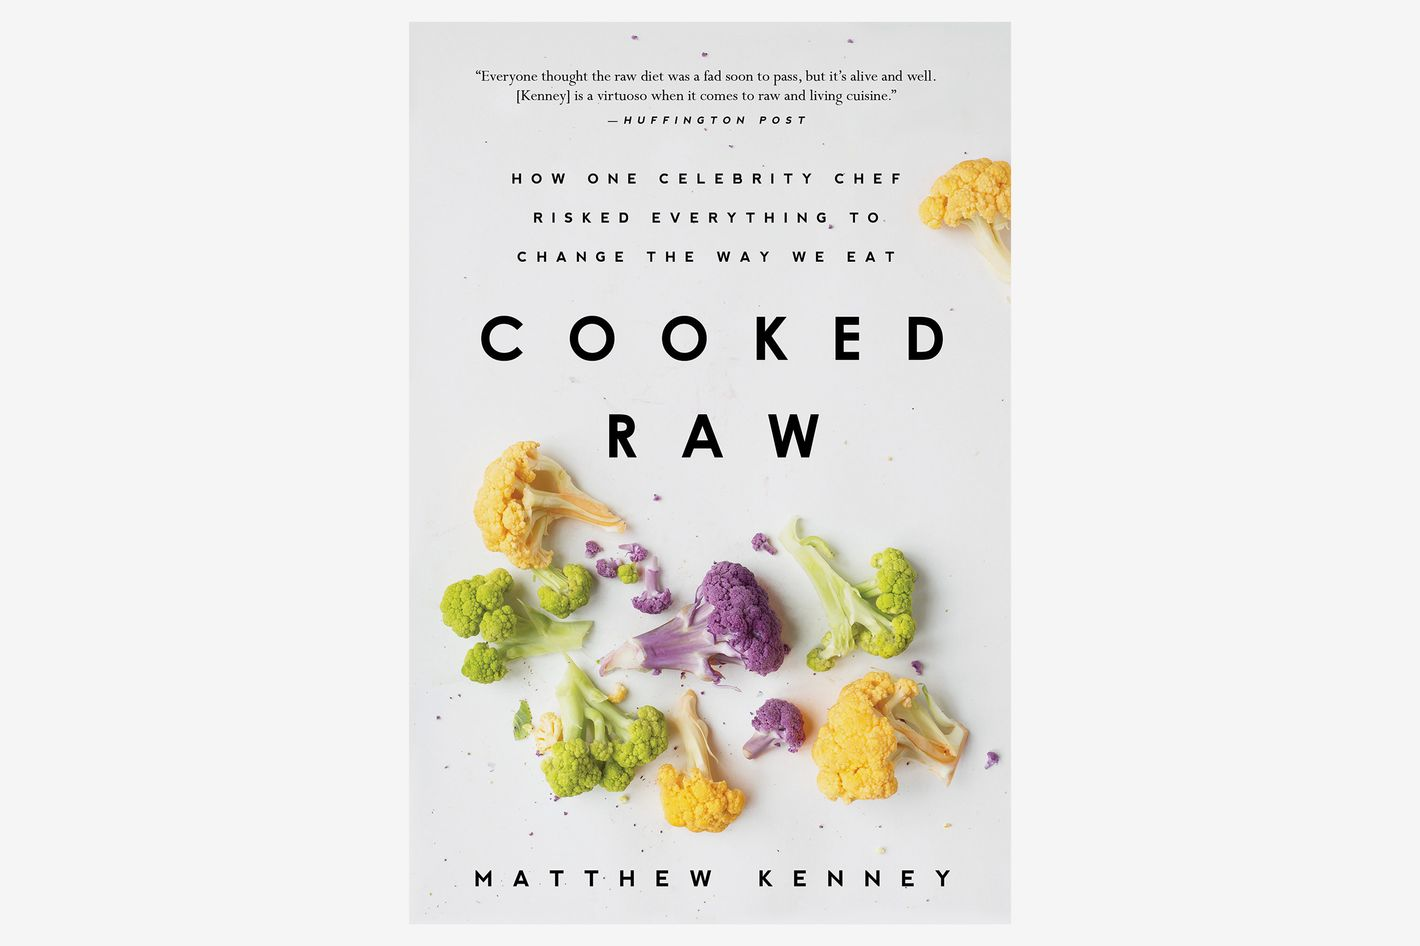 Cooked Raw: How One Celebrity Chef Risked Everything to Change the Way We Eat